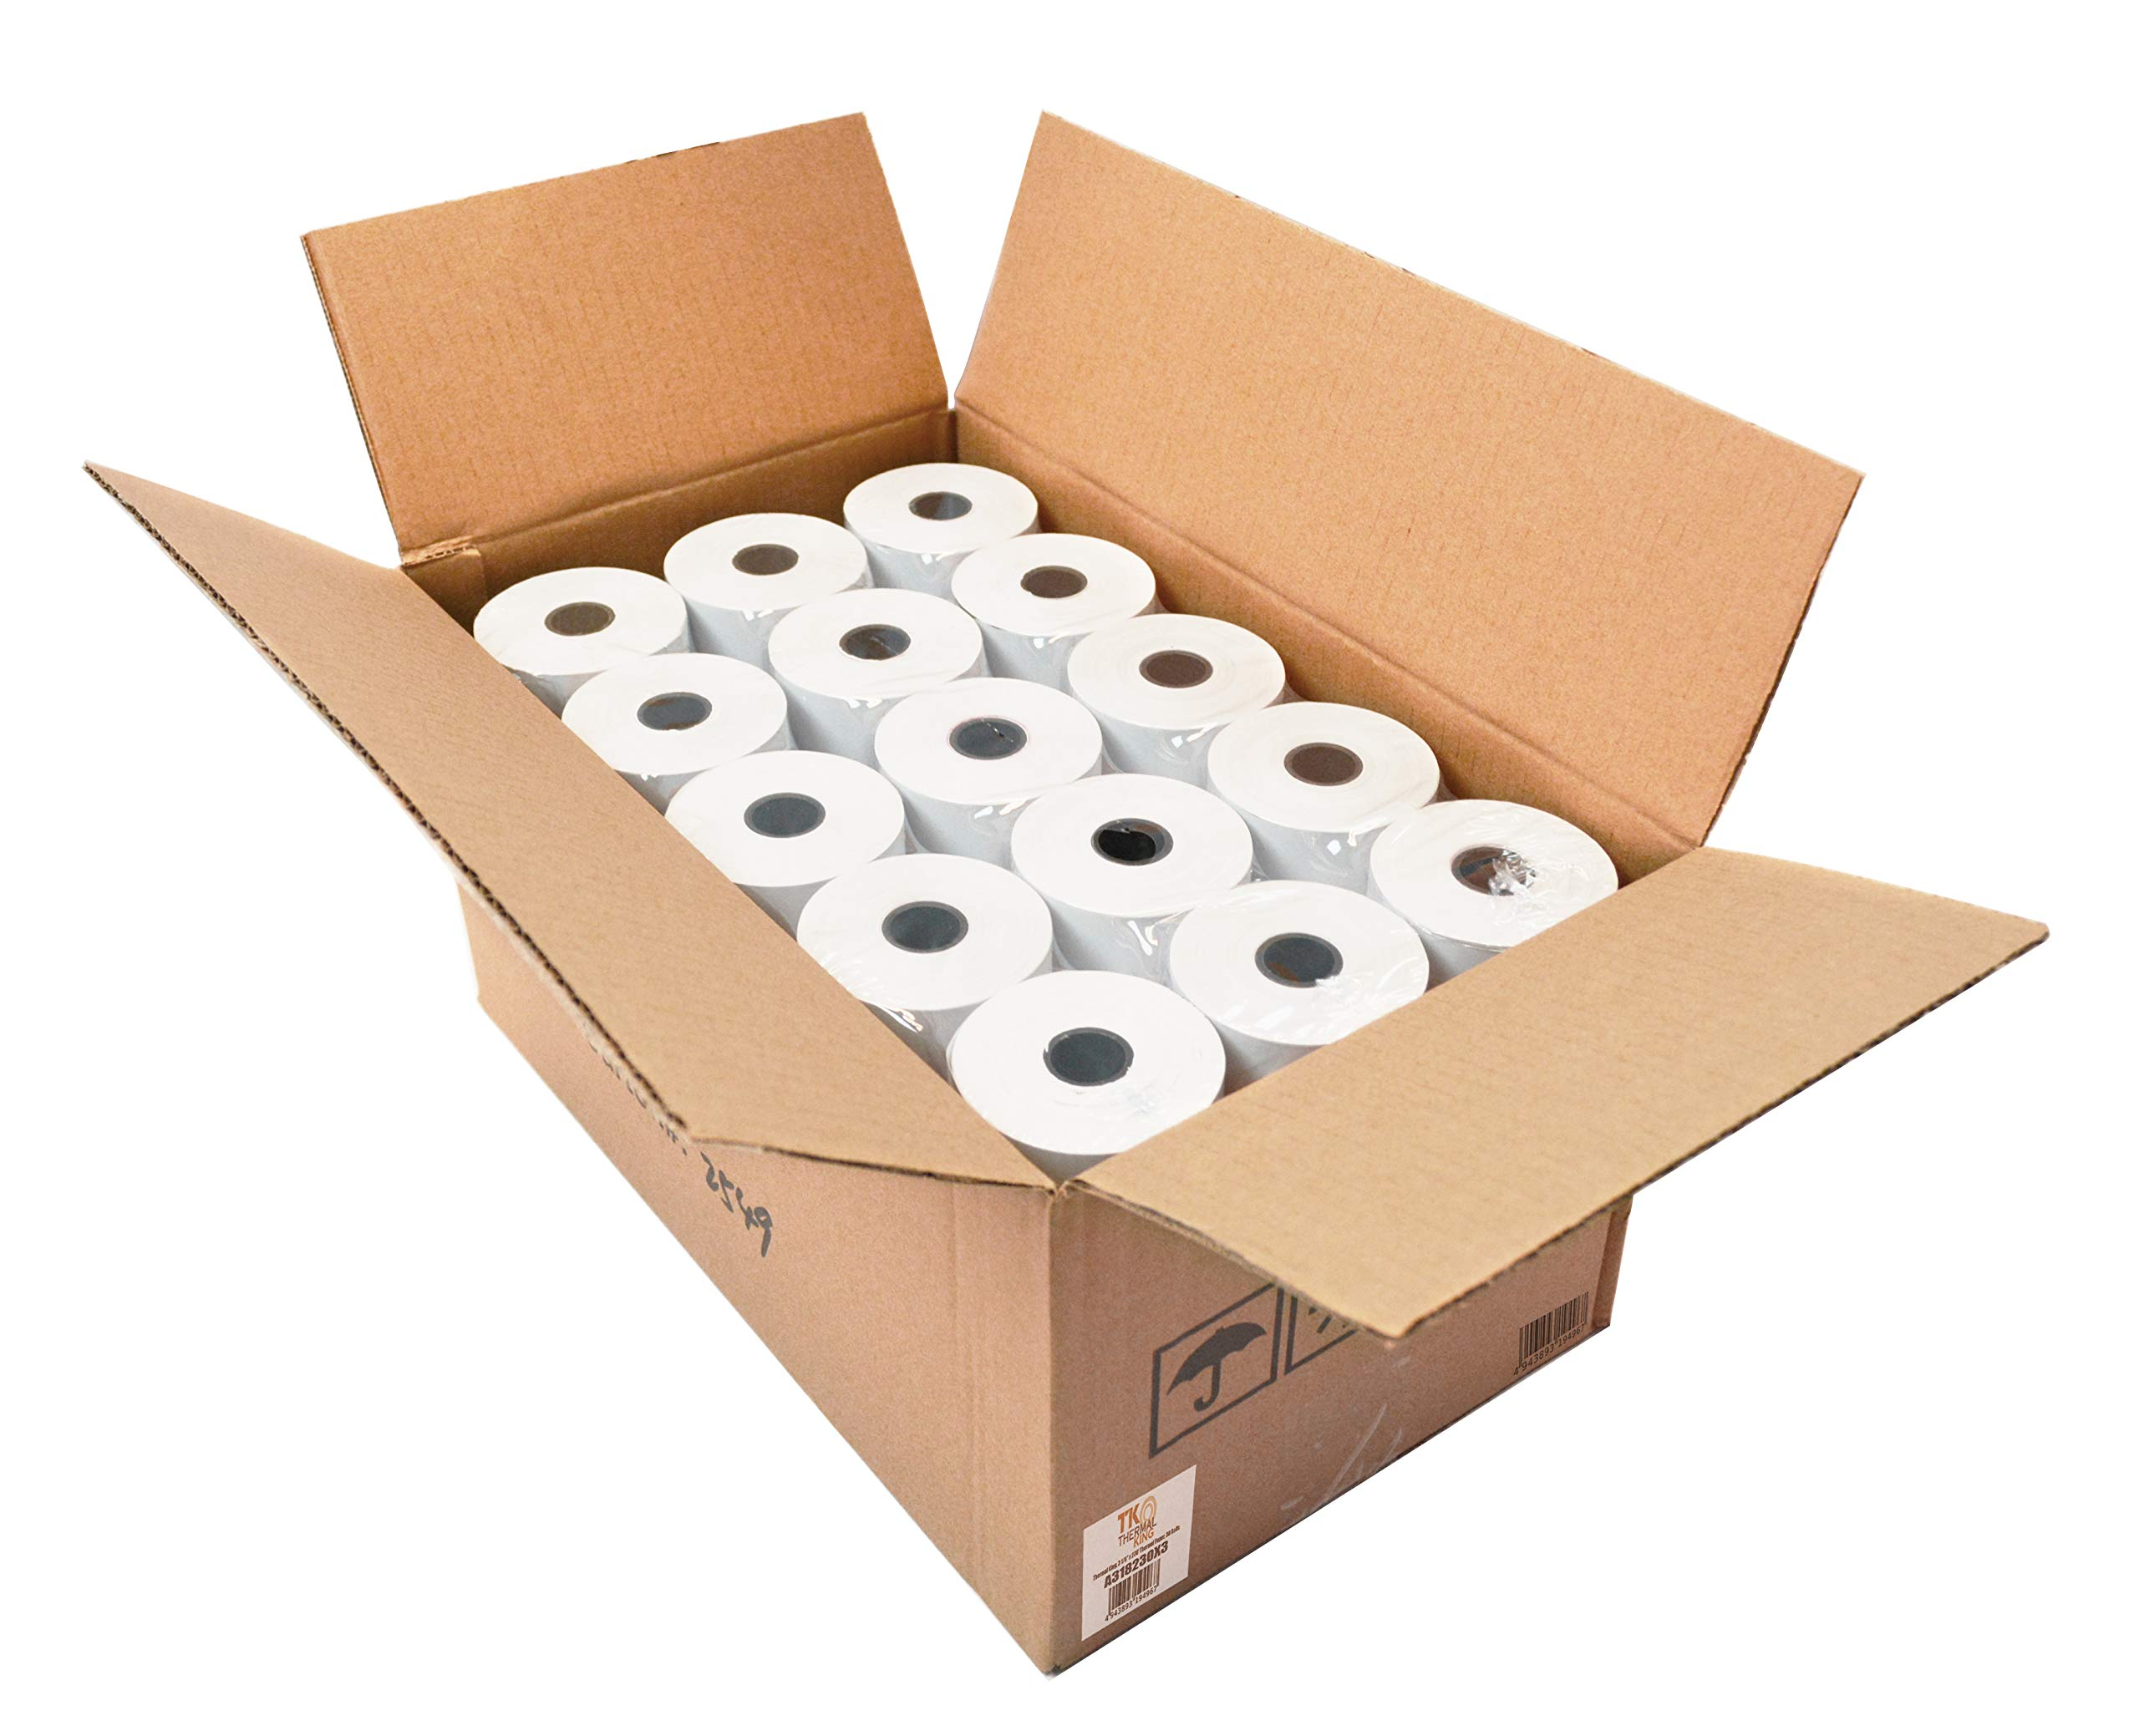 Thermal King, Thermal Credit Card Paper (3 1/8'' x 230' - 30 Rolls) [Thermal King Brand]